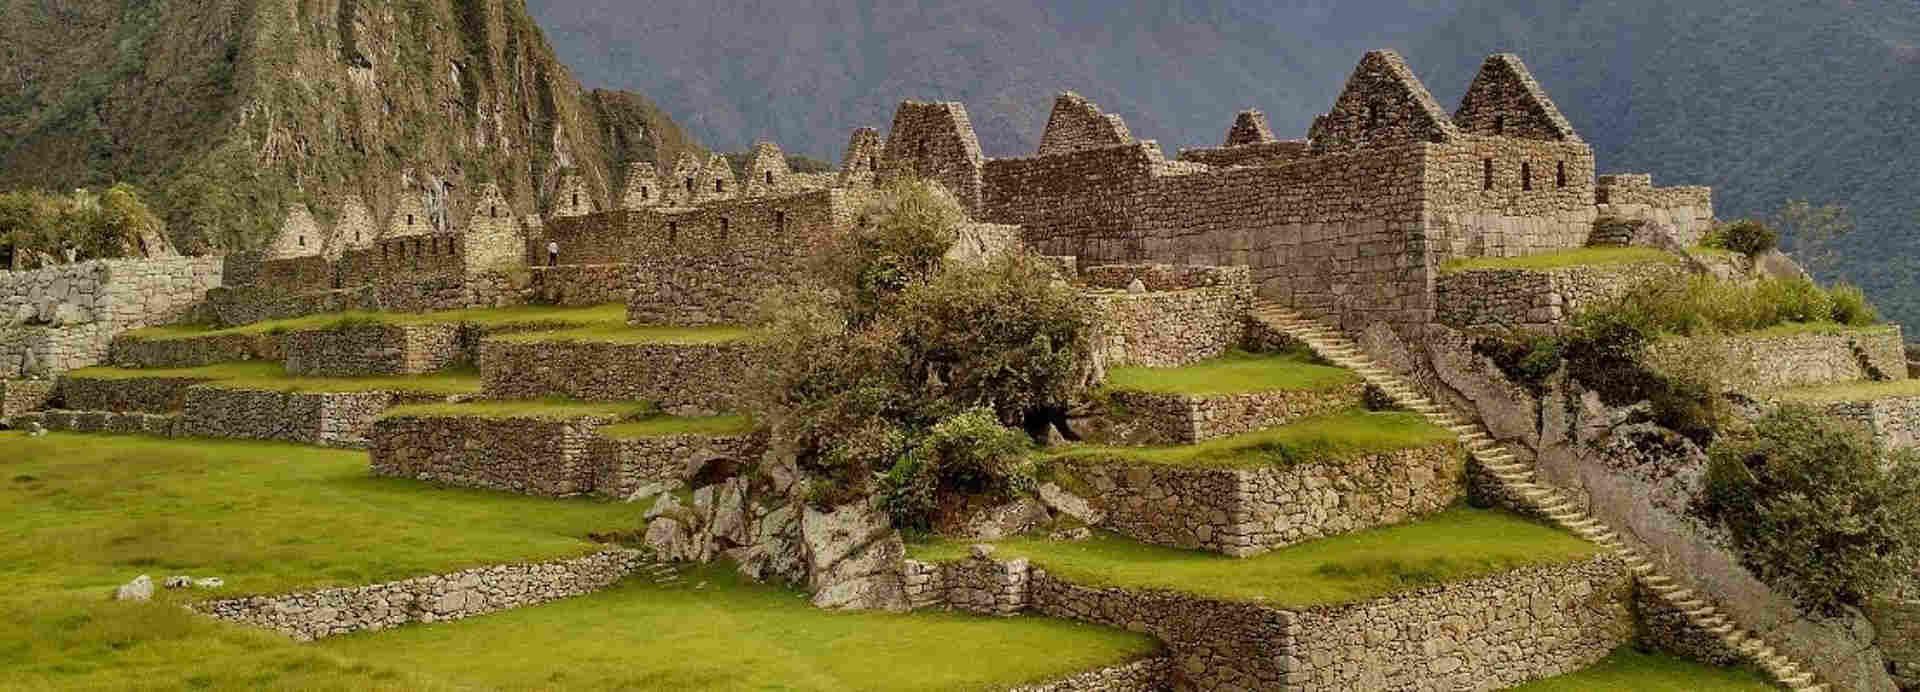 Machu Picchu trip with Ultra Adventures